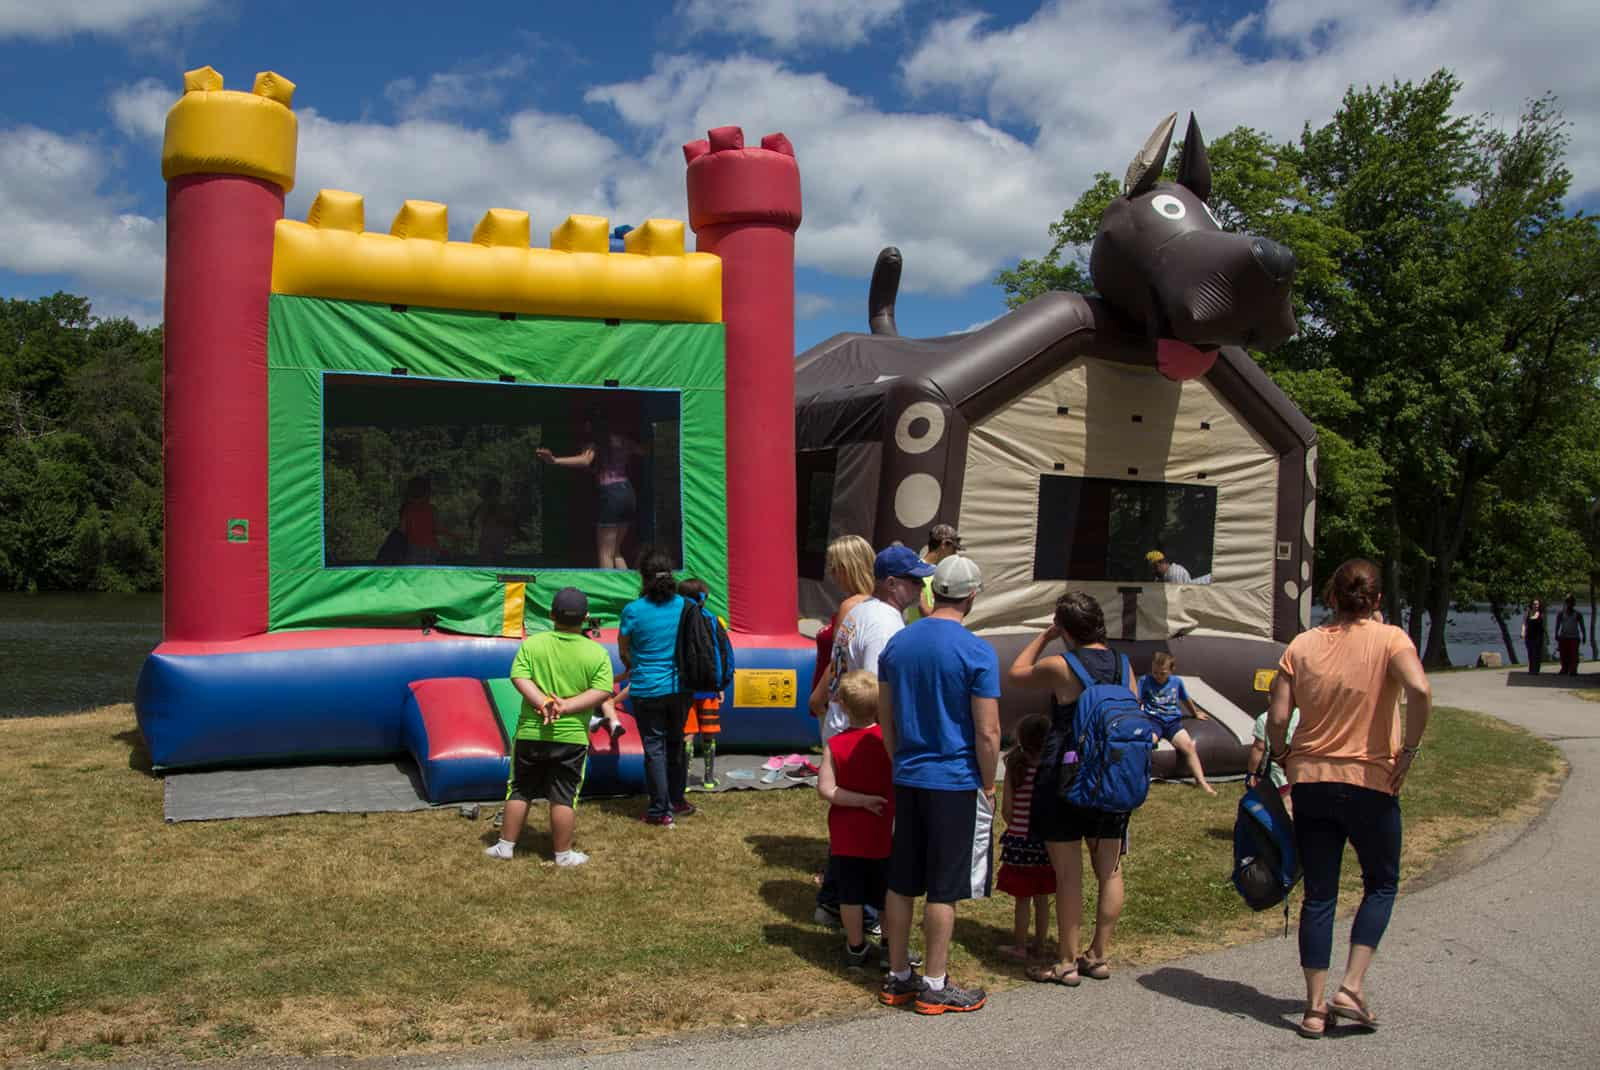 2016 Cars of Summer, Bounce Houses for the kids